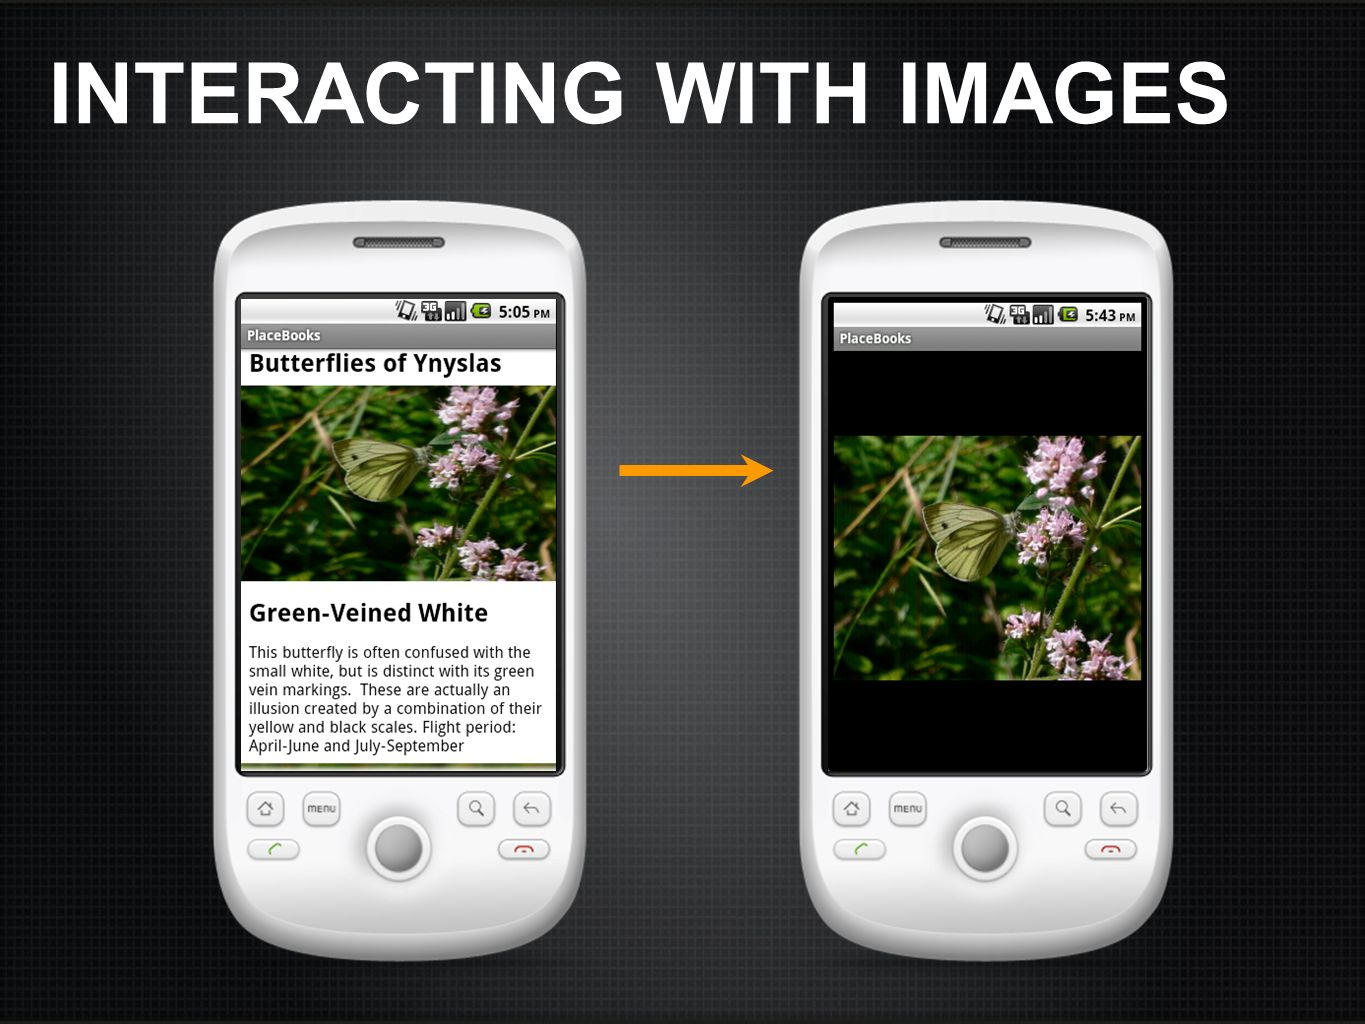 INTERACTING WITH IMAGES